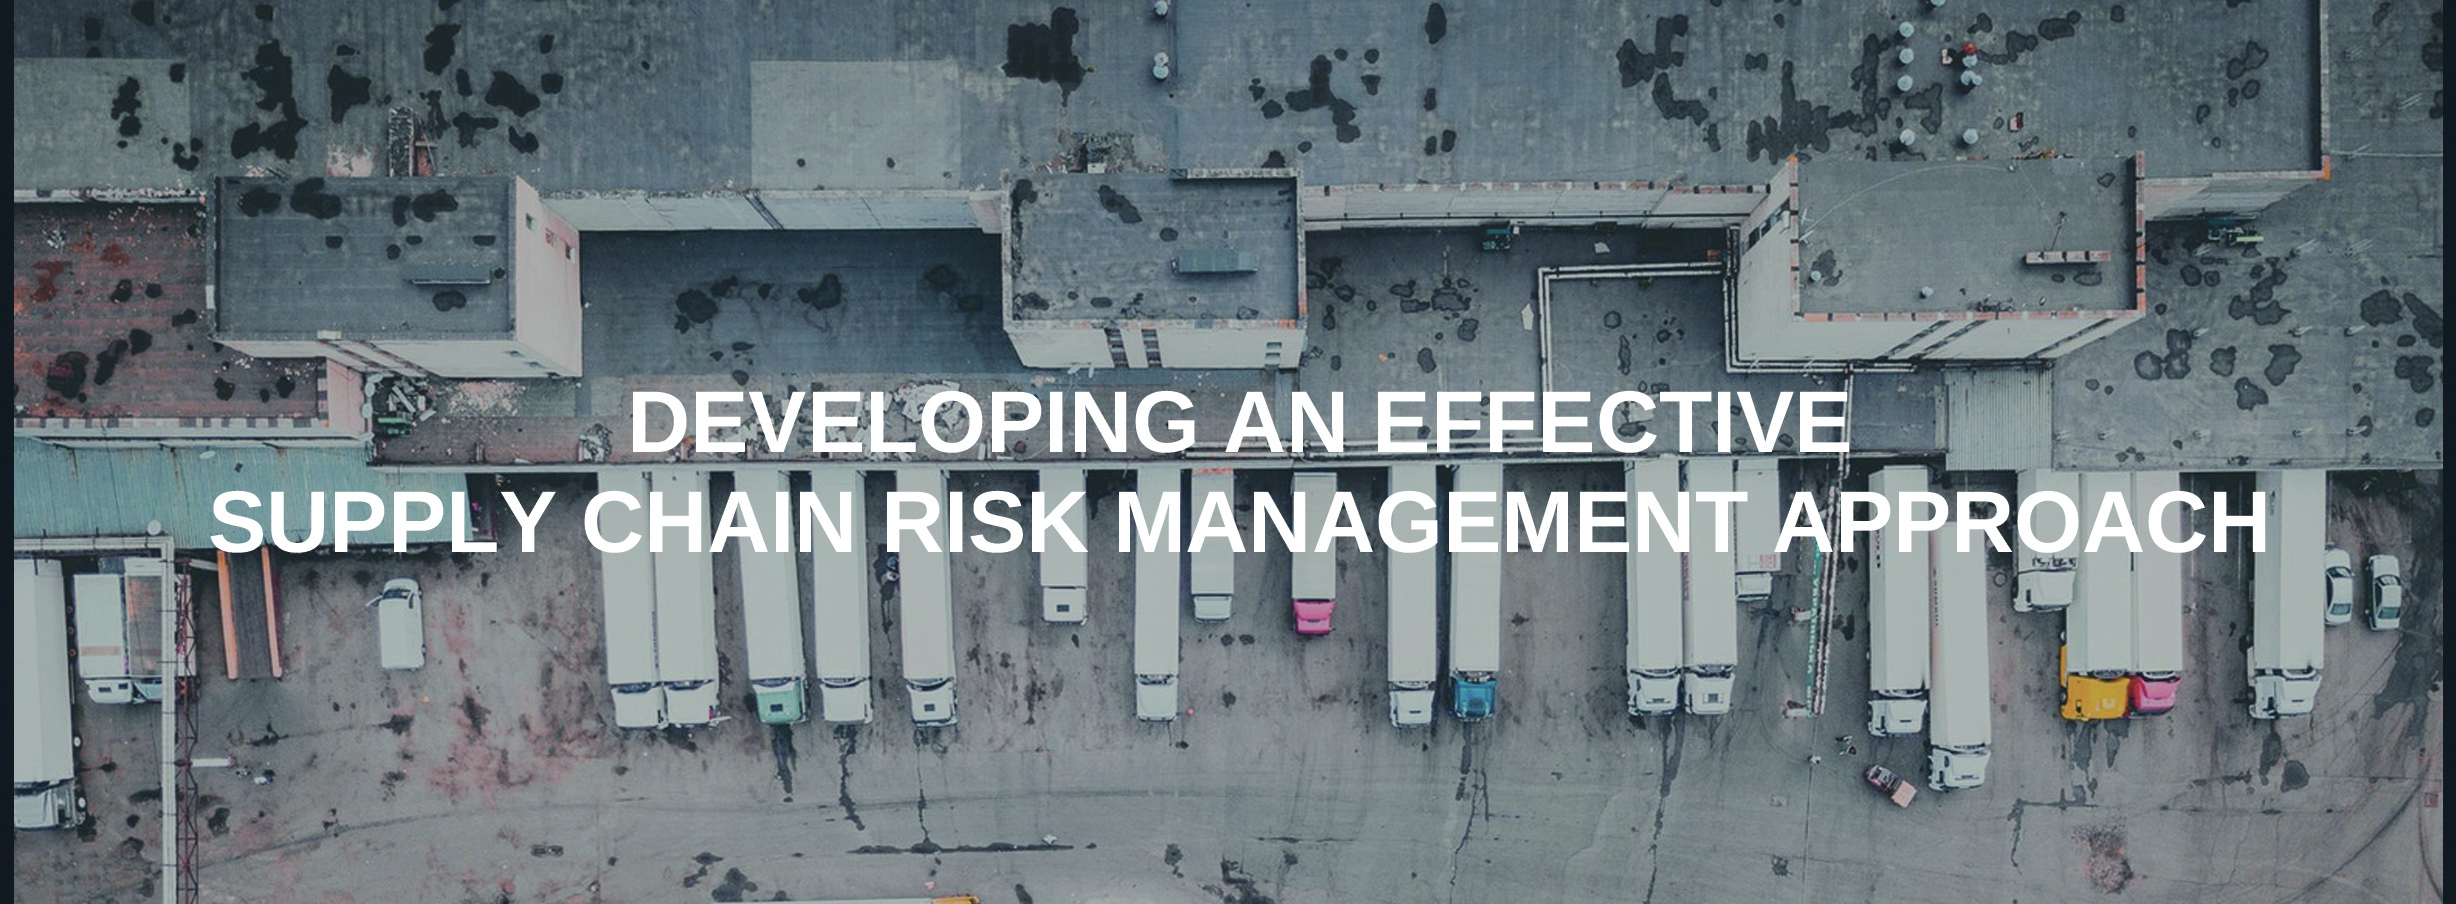 Developing an Effective Supply Chain Risk Management Approach